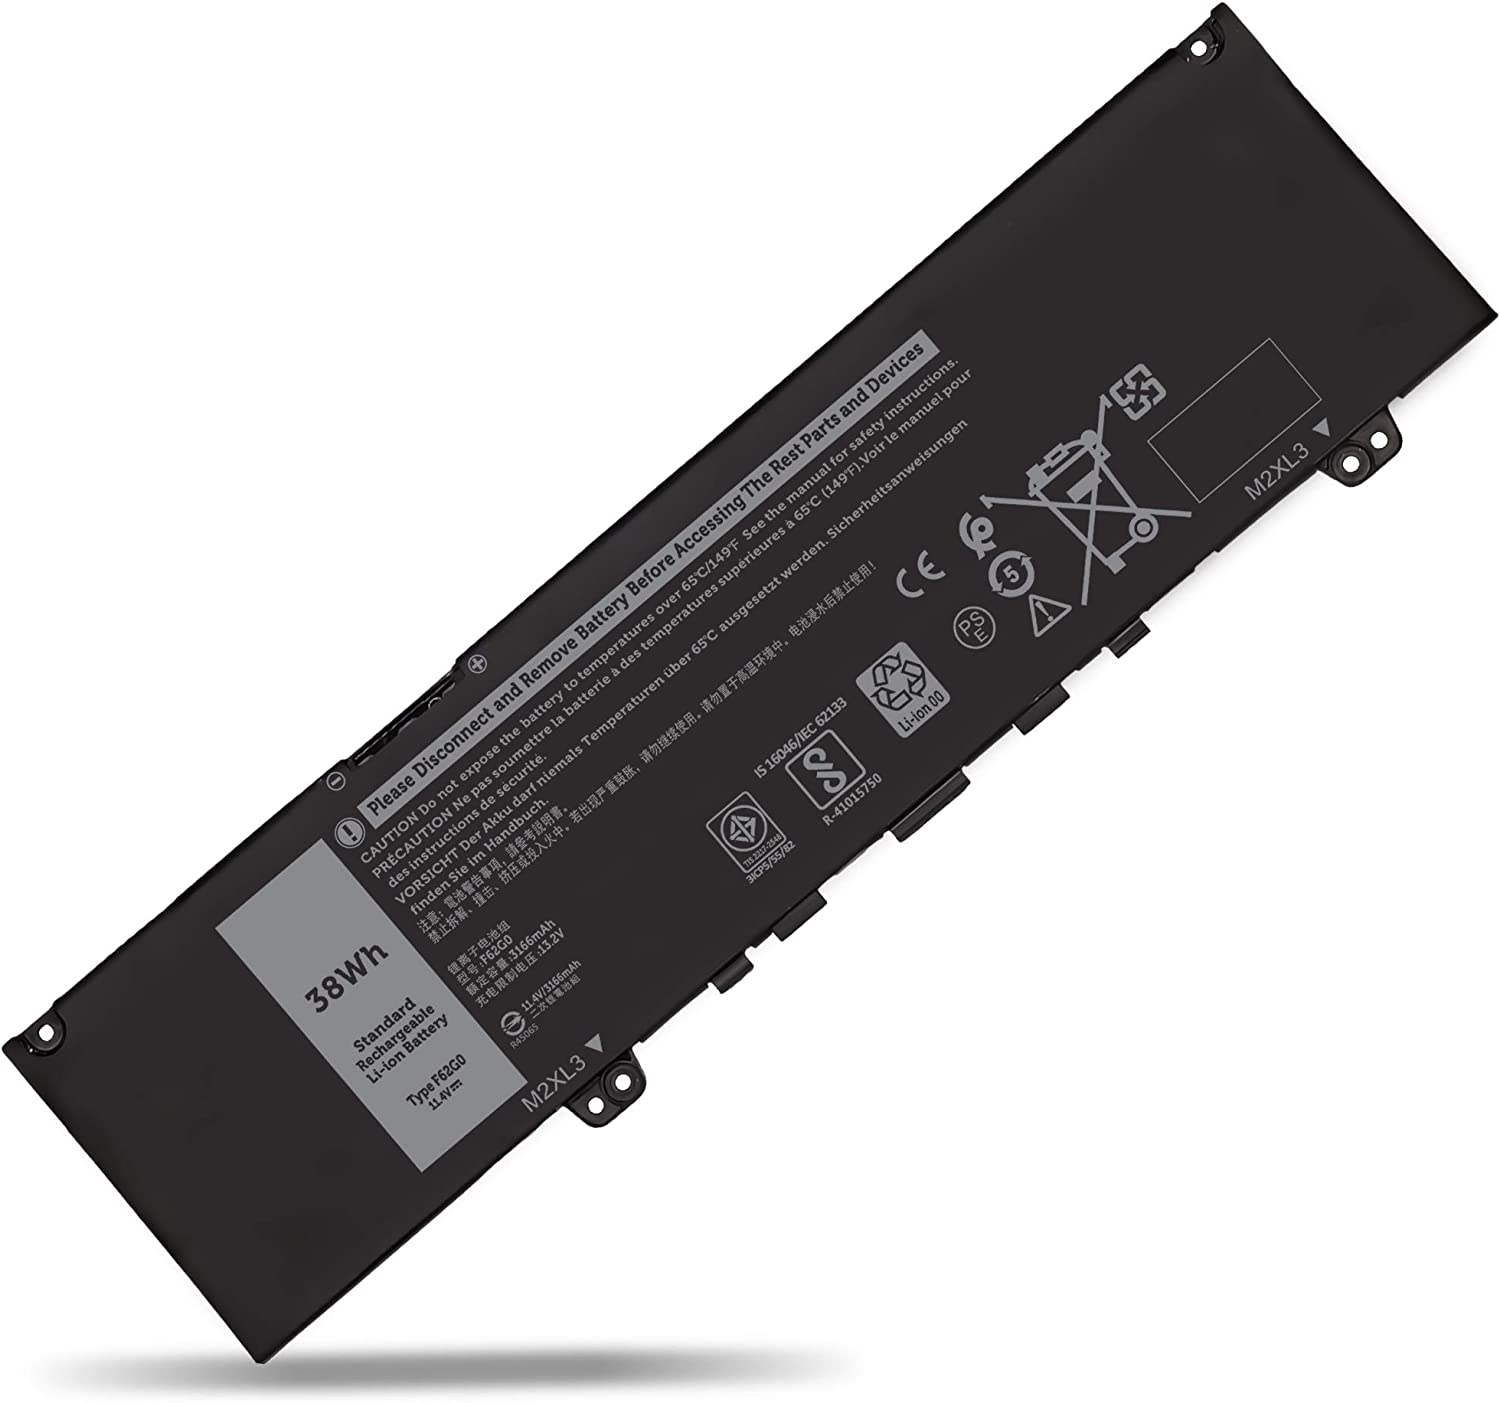 F62G0 Laptop Battery for Dell Inspiron 13 7000 2-in-1 7373 7386 7370 7380 5370 P83G P87G P91G P83G001 P83G002 P87G001 P91G001 Vostro 5370 F62GO RPJC3 39DY5 039DY5 0RPJC3 11.4V 3-Cell